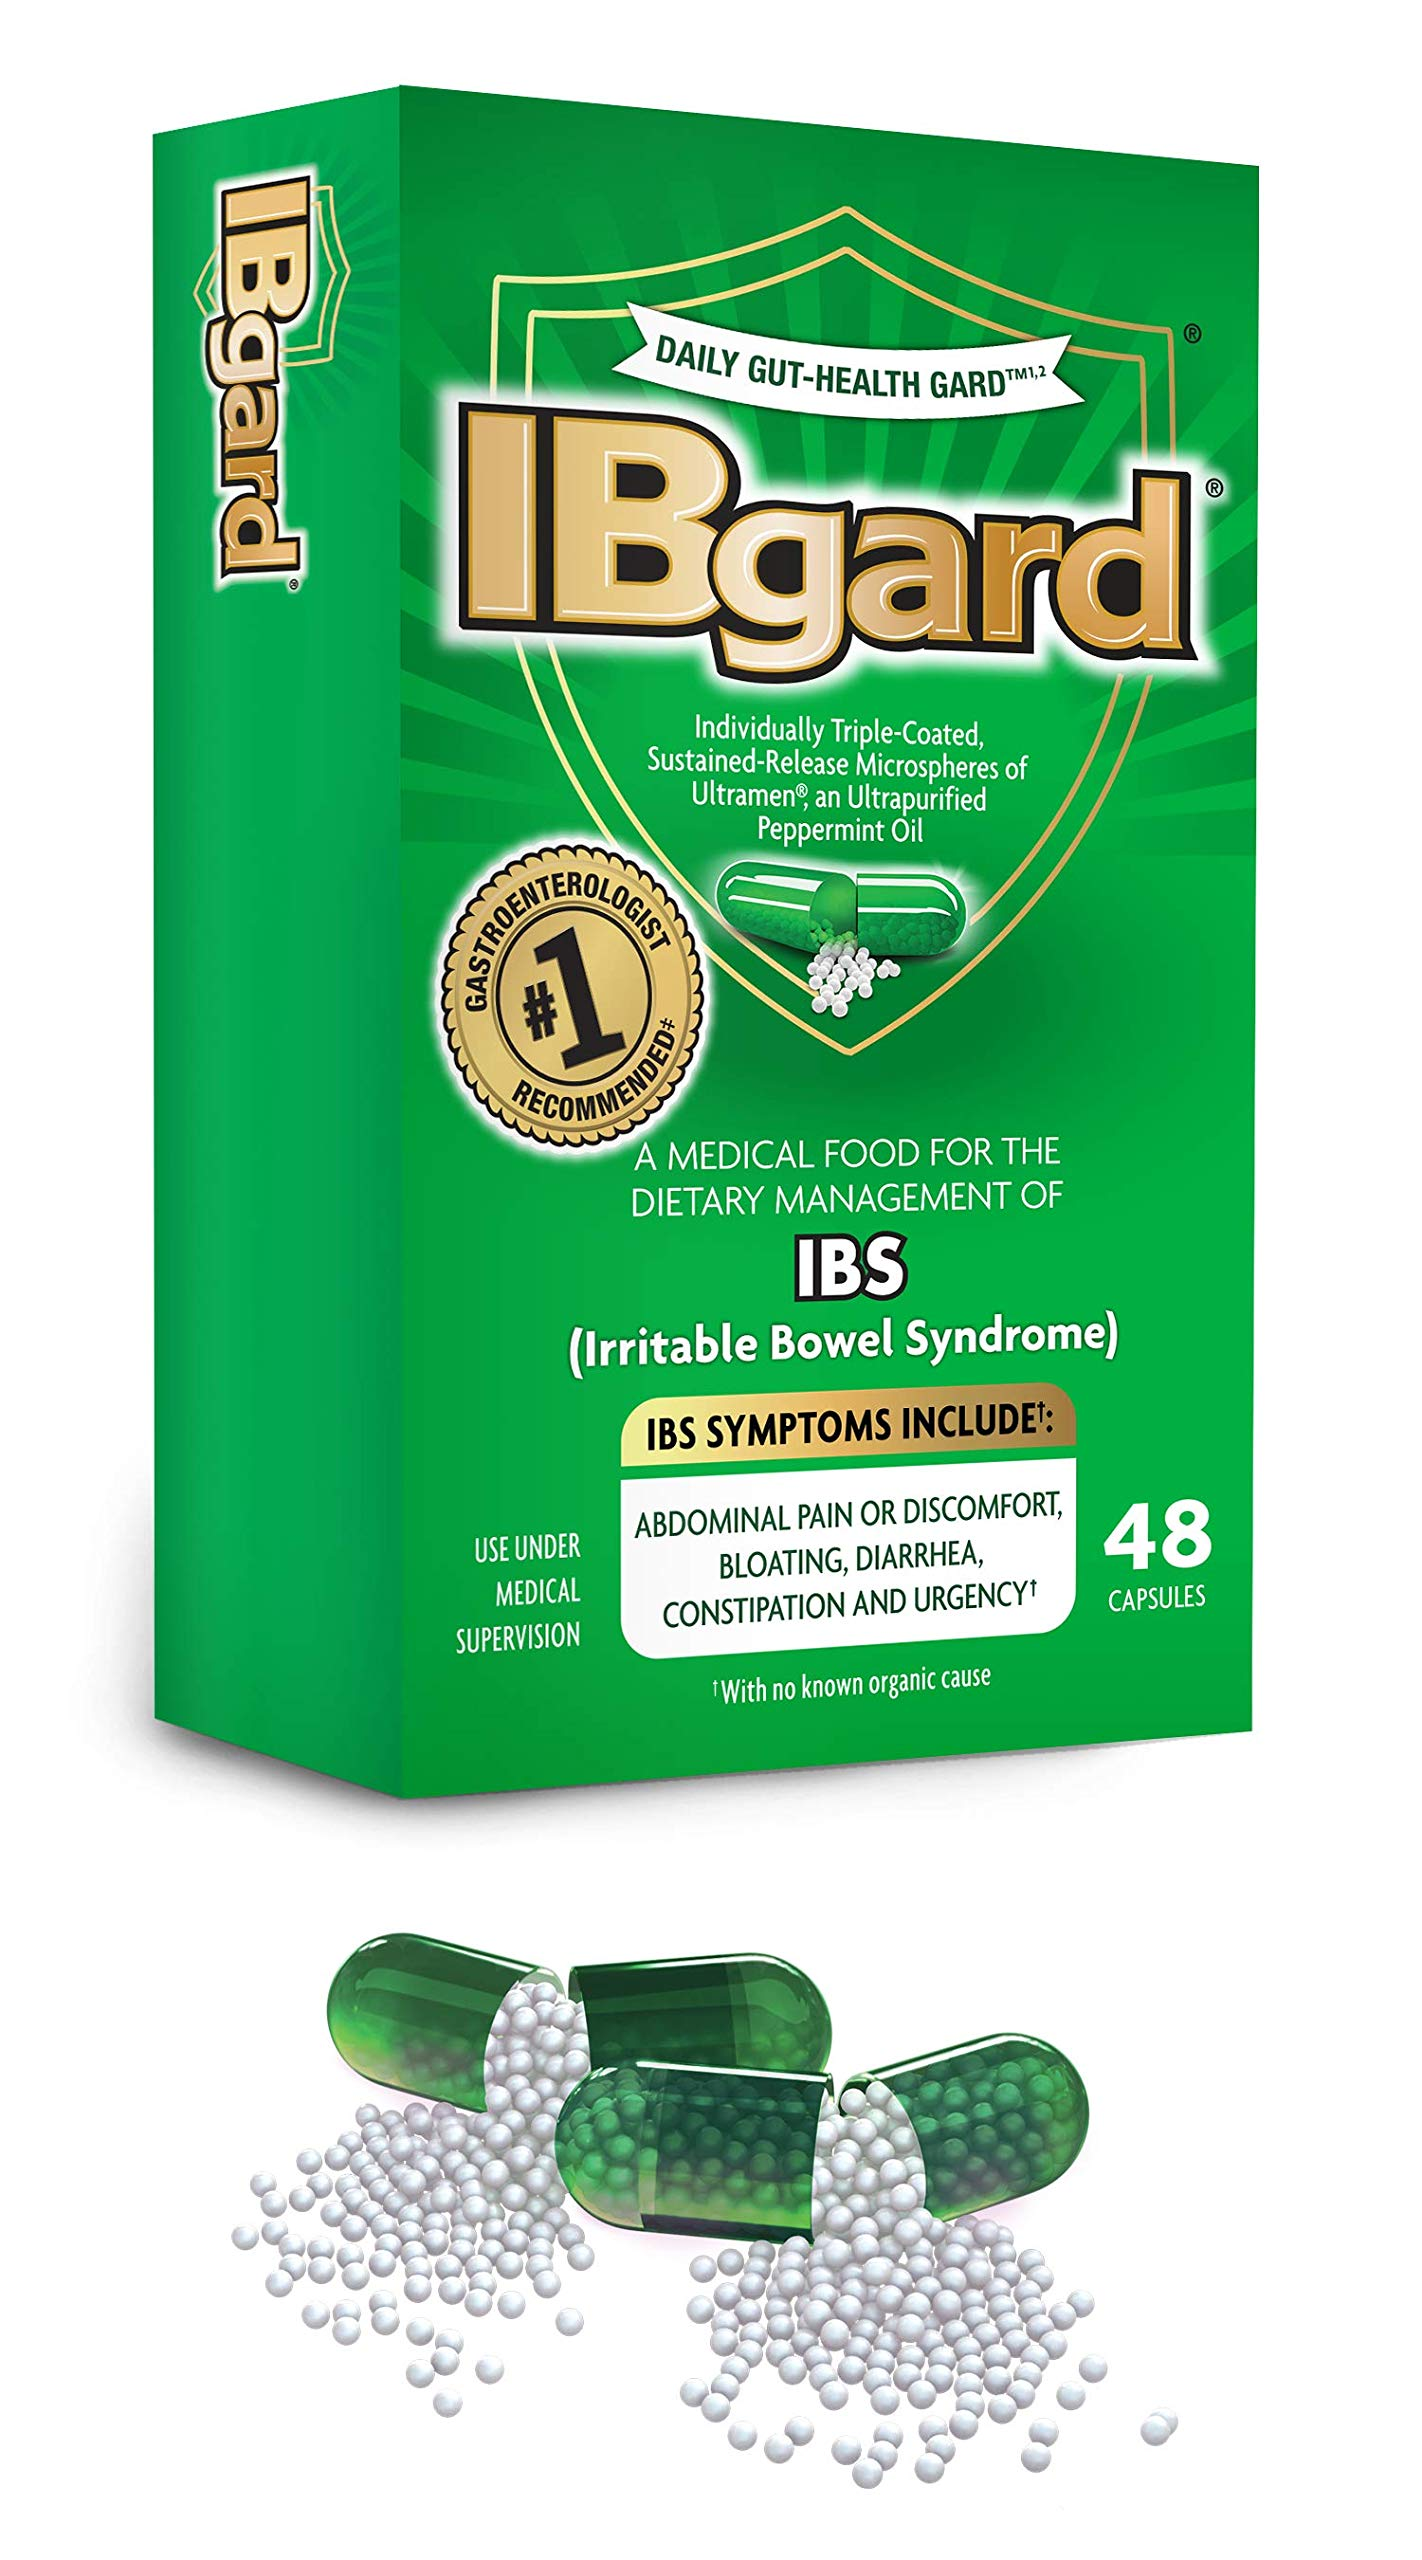 IBgard® for Irritable Bowel Syndrome, 48 Capsules